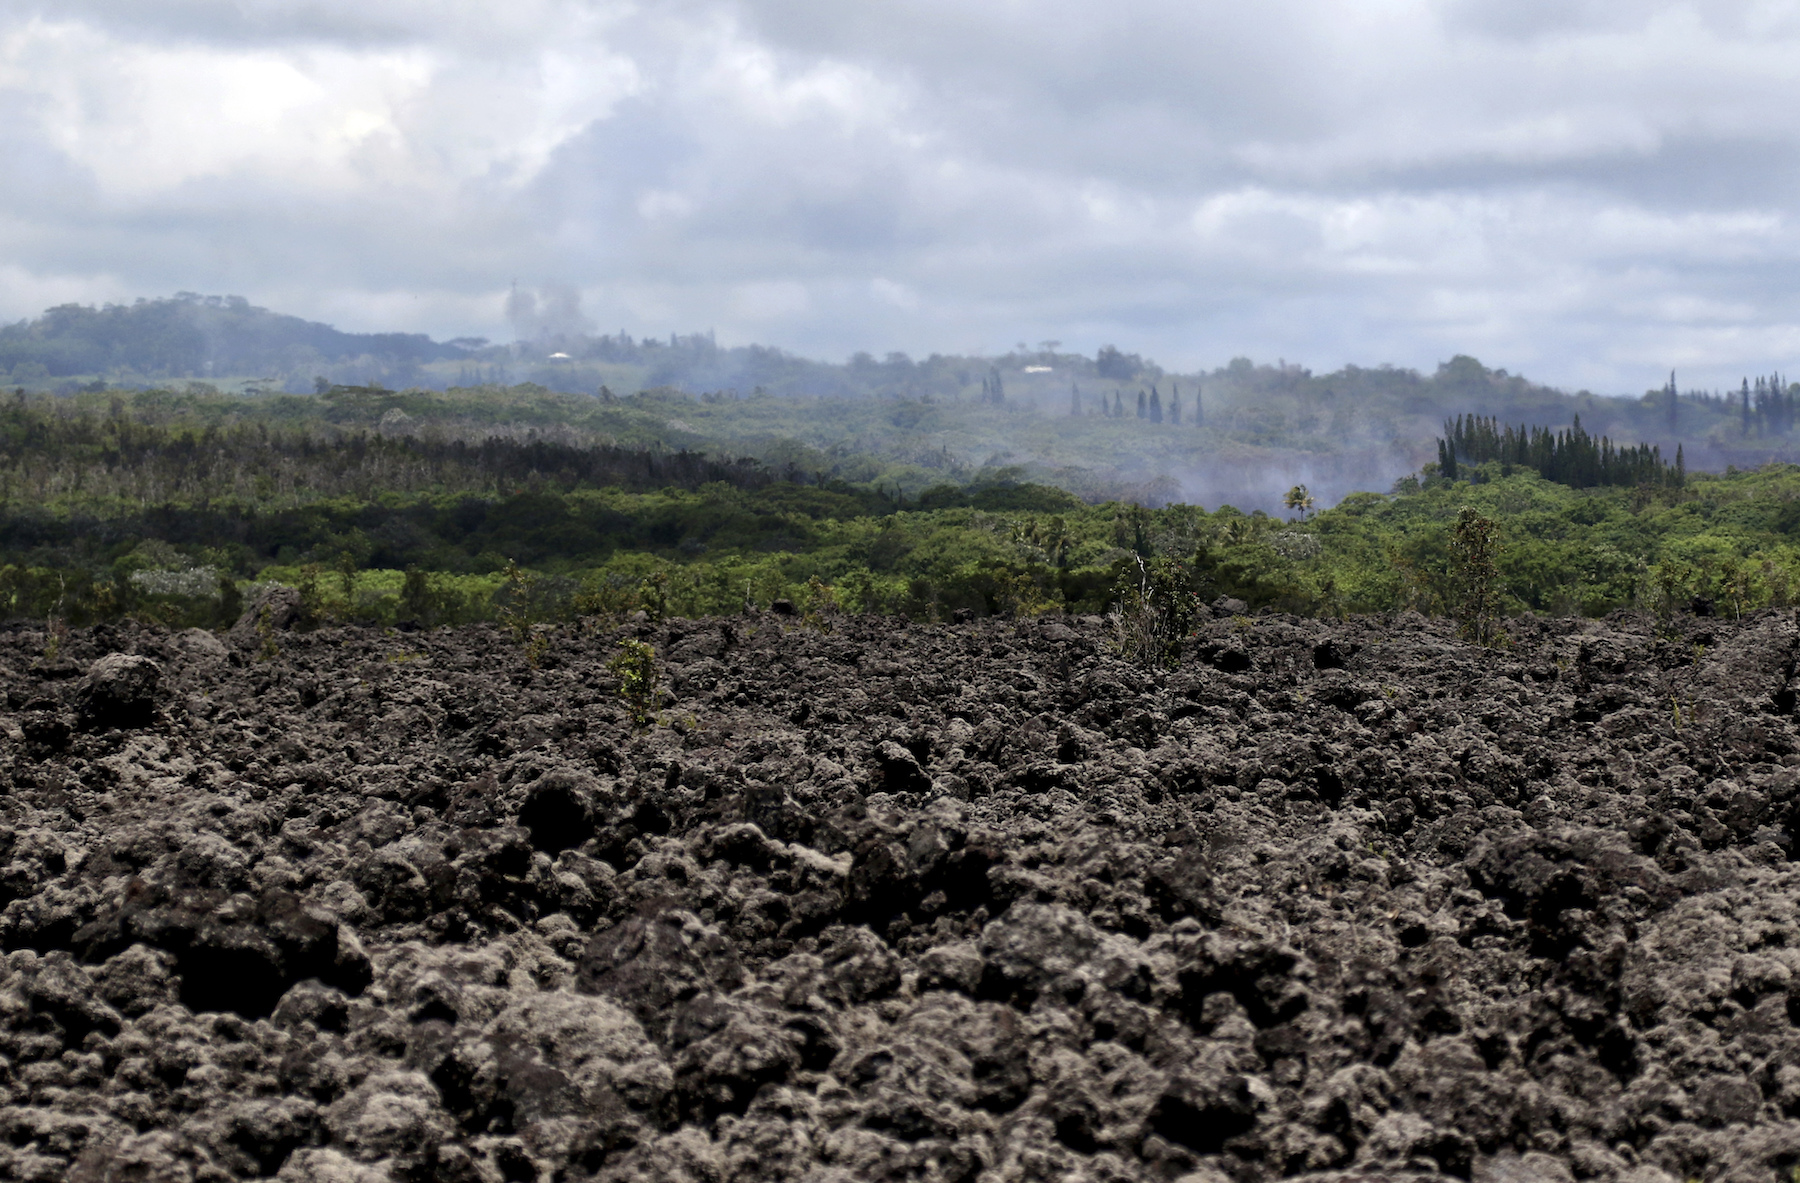 <div class='meta'><div class='origin-logo' data-origin='AP'></div><span class='caption-text' data-credit='AP Photo/Caleb Jones'>Volcanic gases and ash rise from recent lava fissures near Pahoa, Hawaii on Monday, May 14, 2018. The field of hardened lava rocks in the foreground is from previous eruptions.</span></div>